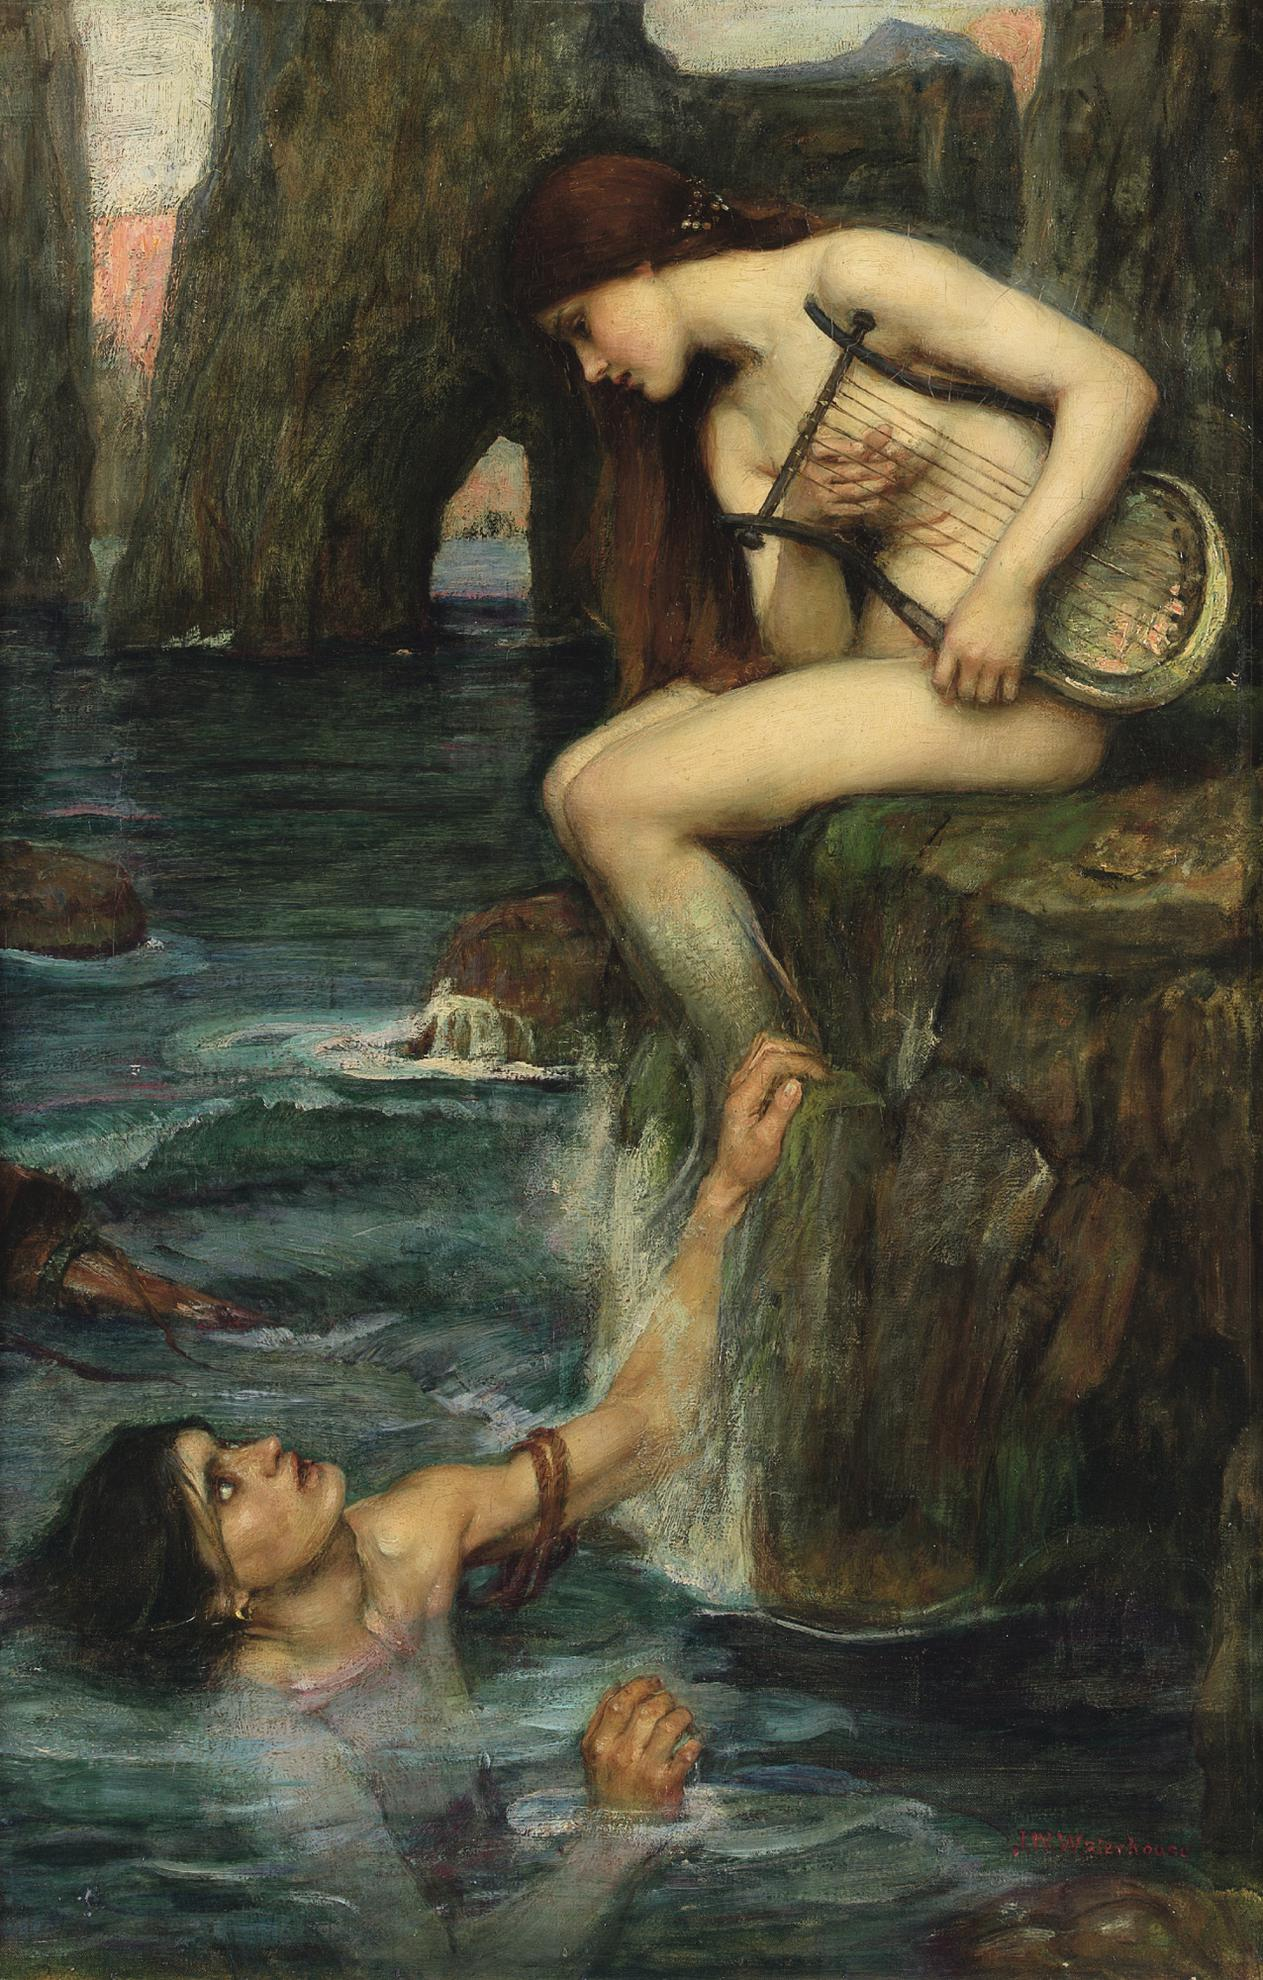 John William Waterhouse R.I. - The Siren-